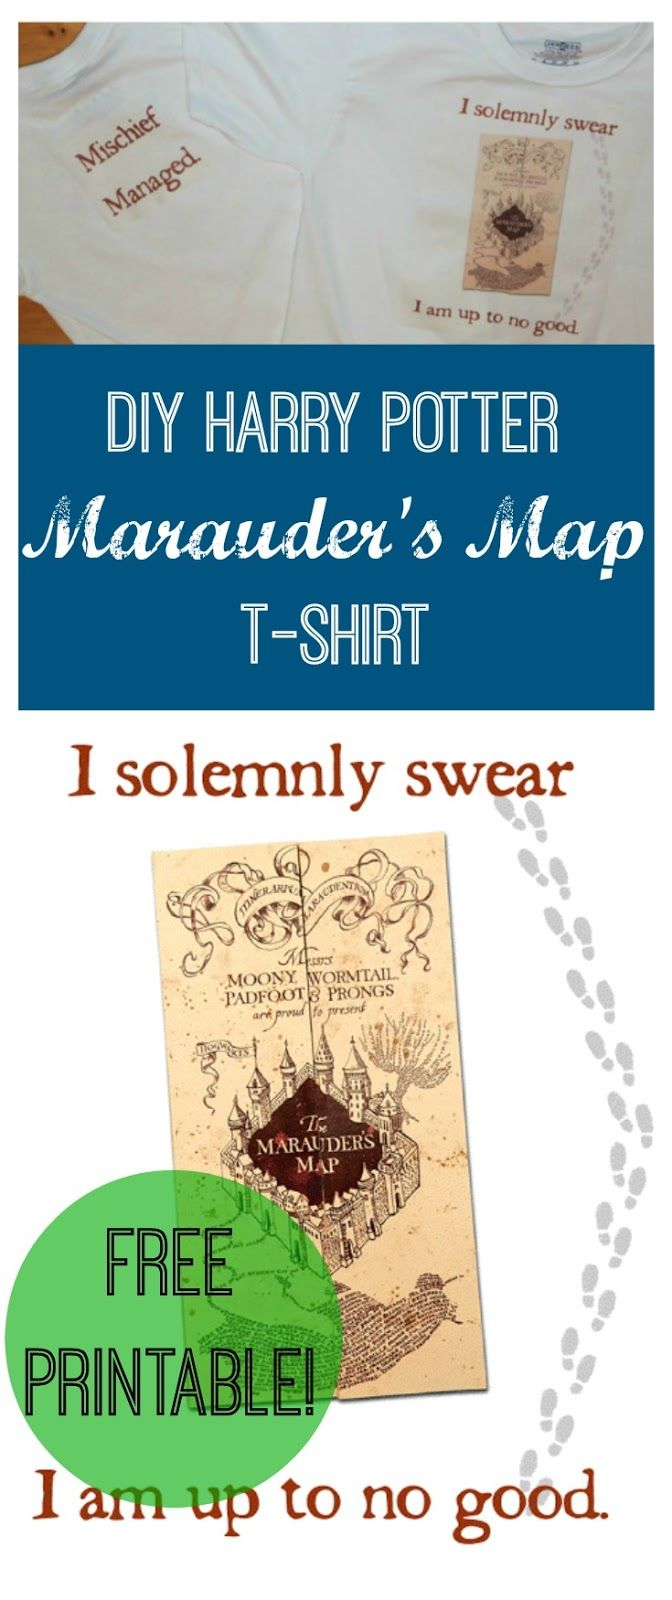 DIY Harry Potter Marauder's Map T-shirt (with free Printable!) I solemnly swear I am up to no good. Mischief Managed. Also, tutorial for how to make your own t-shirts with iron on transfers.